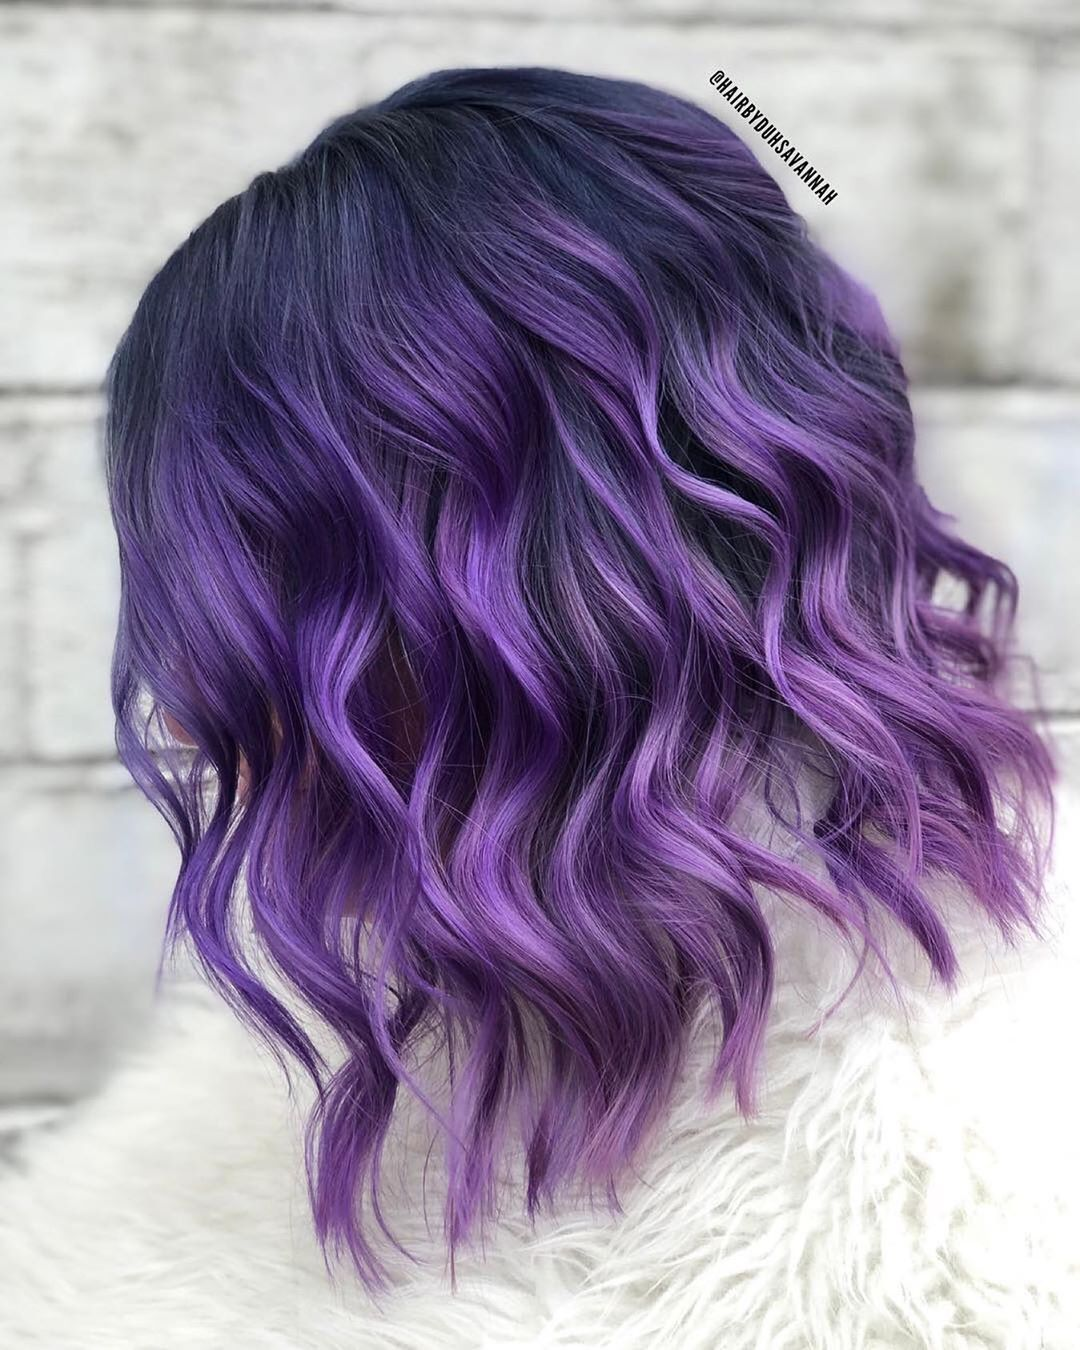 10 Ombre Hairstyles For Medium Length Hair Ombre Hair Trends 2020 2021 In 2020 Lilac Hair Hair Styles Hair Colour Design